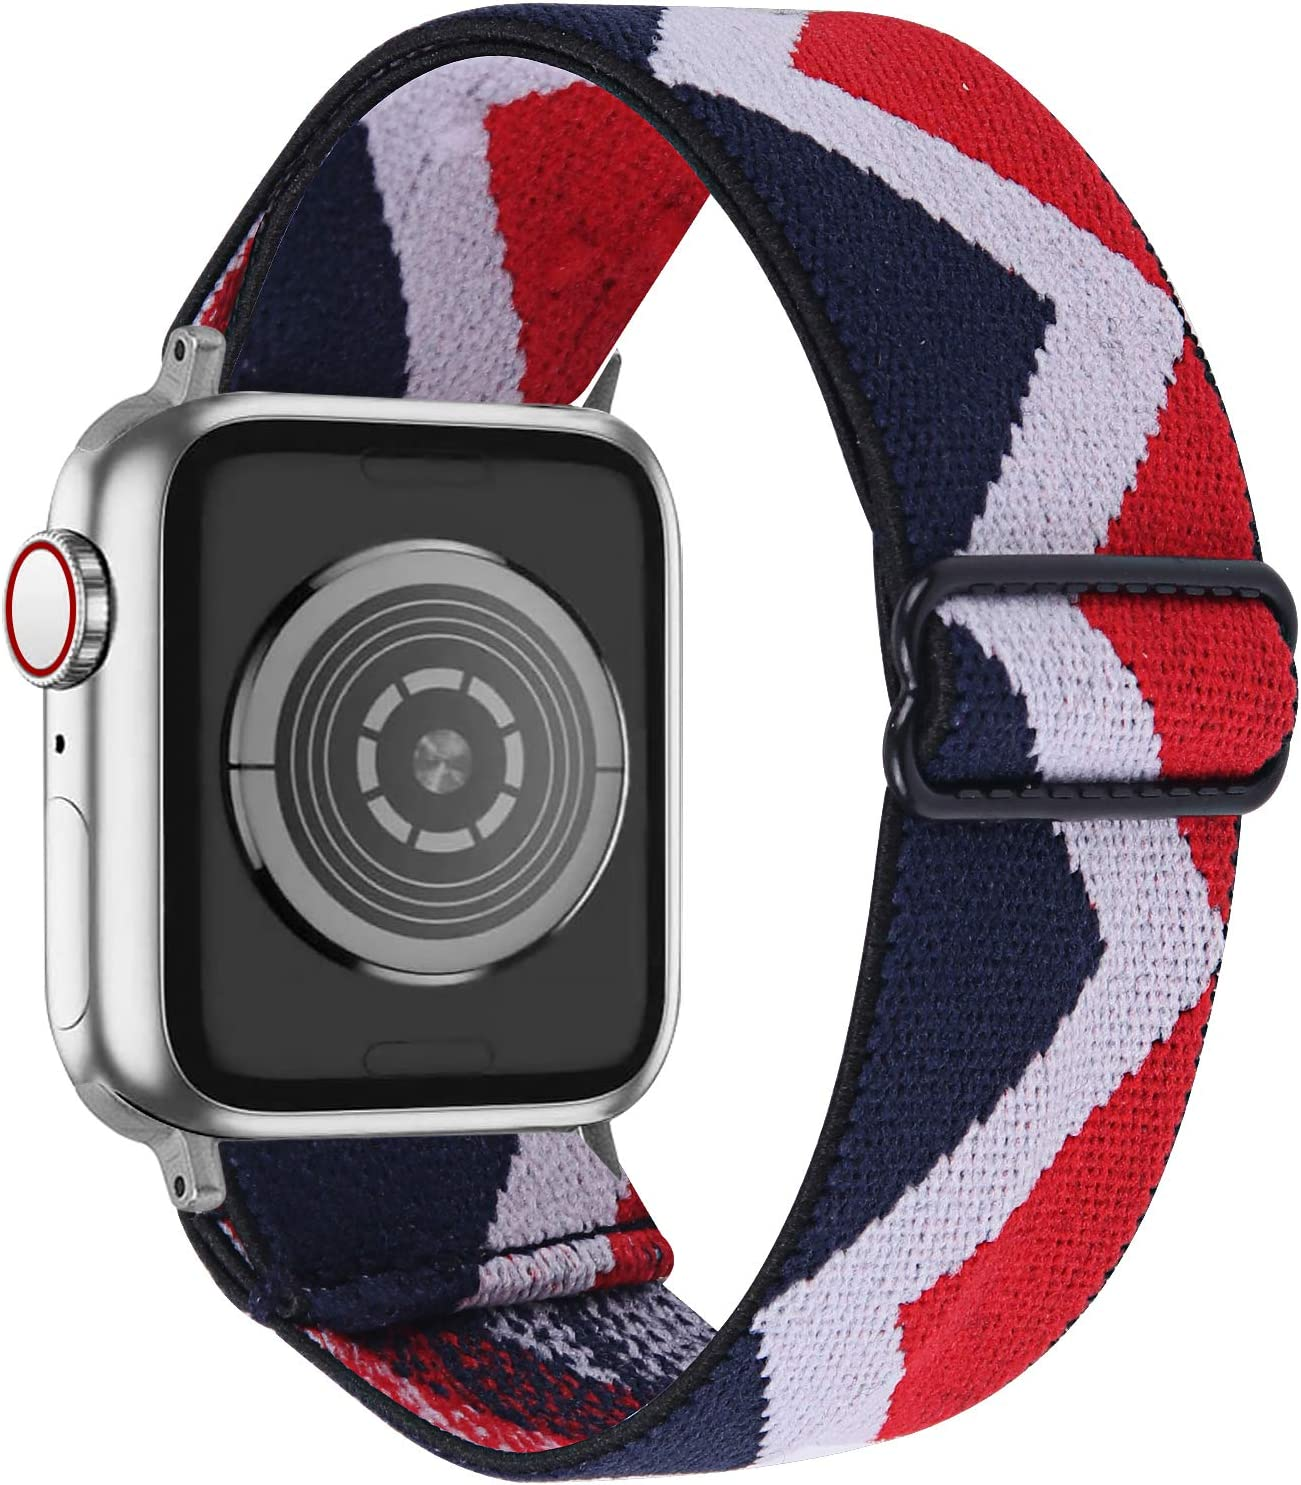 OULUCCI Stretchy Loop Strap Compatible for Apple Watch Bands 40mm 38mm iWatch SE & Series 6/5/4/3/2/1 Stretch Elastics Wristbelt